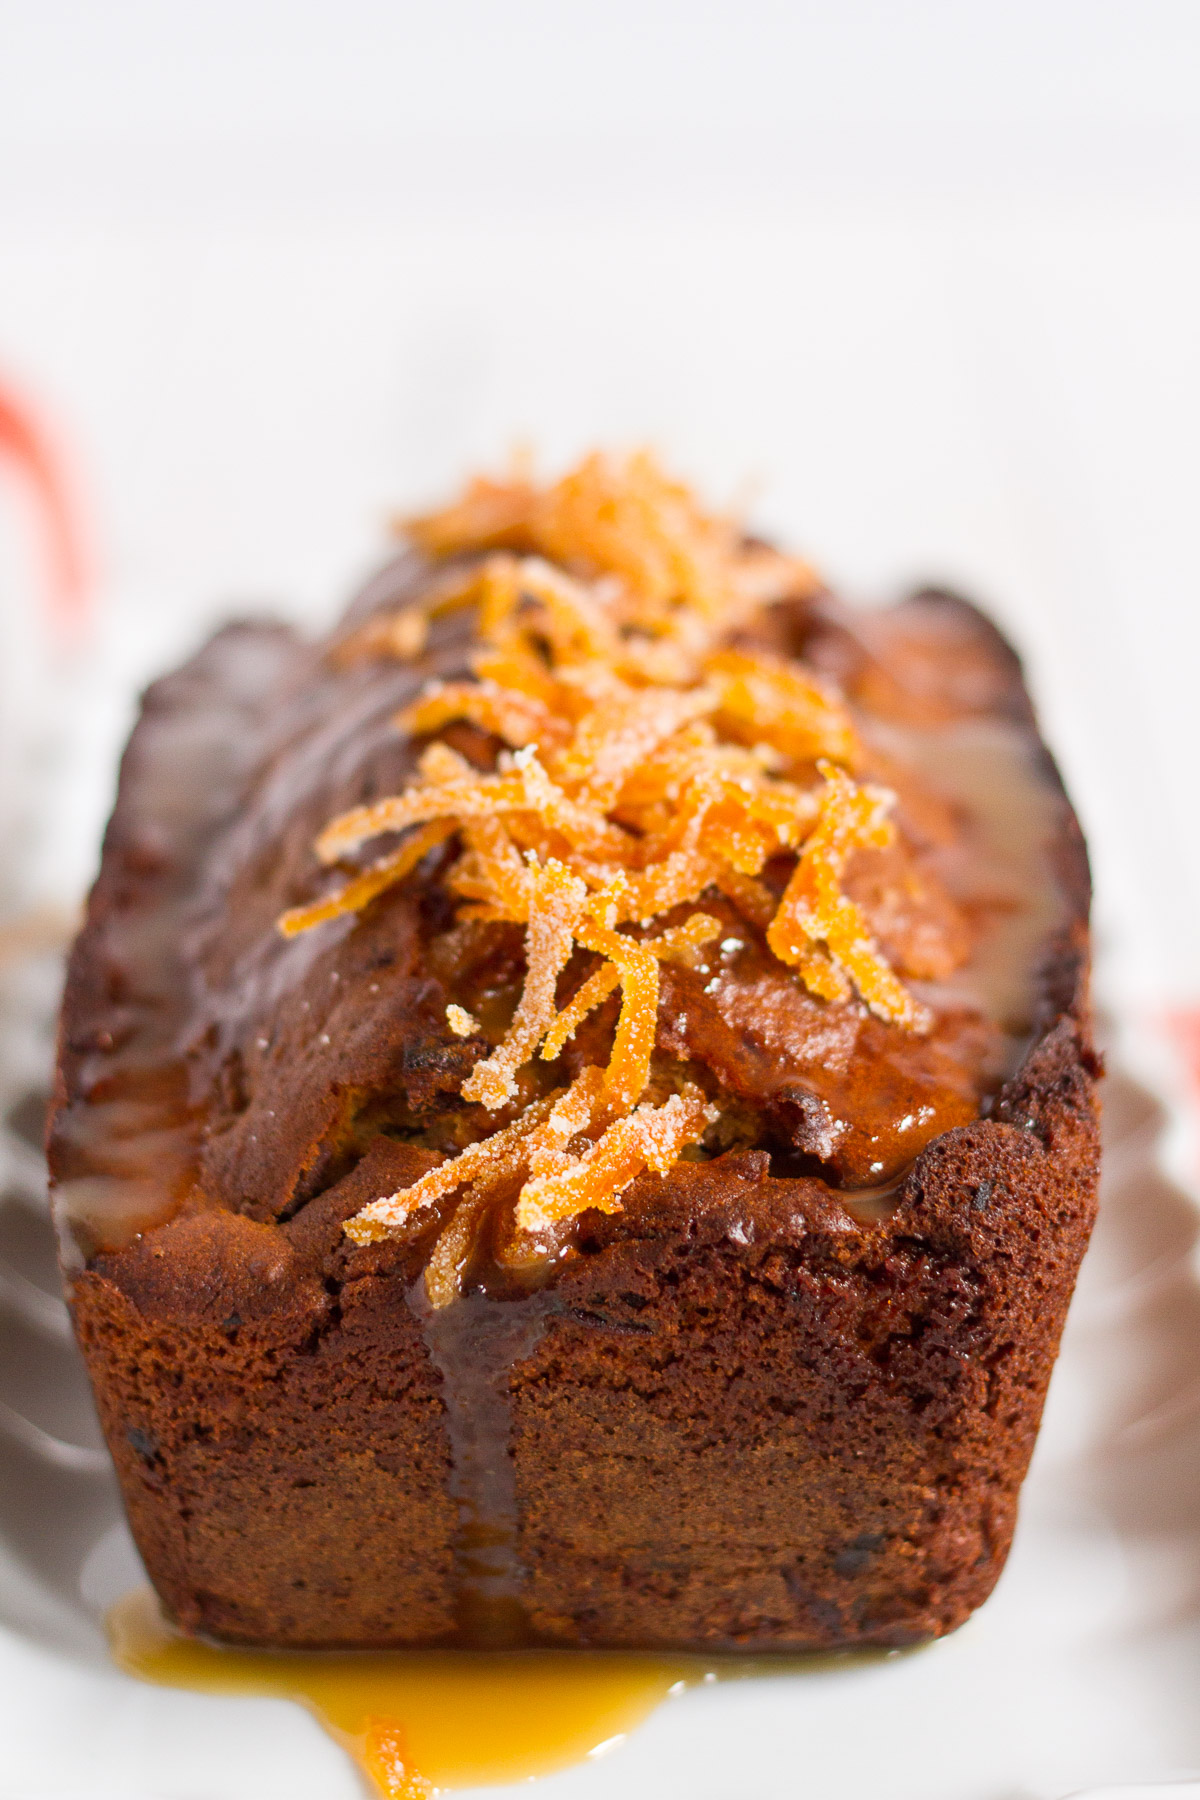 a delightful orange cake filled with dates and walnuts, and topped with a luxurious orange butterscotch sauce